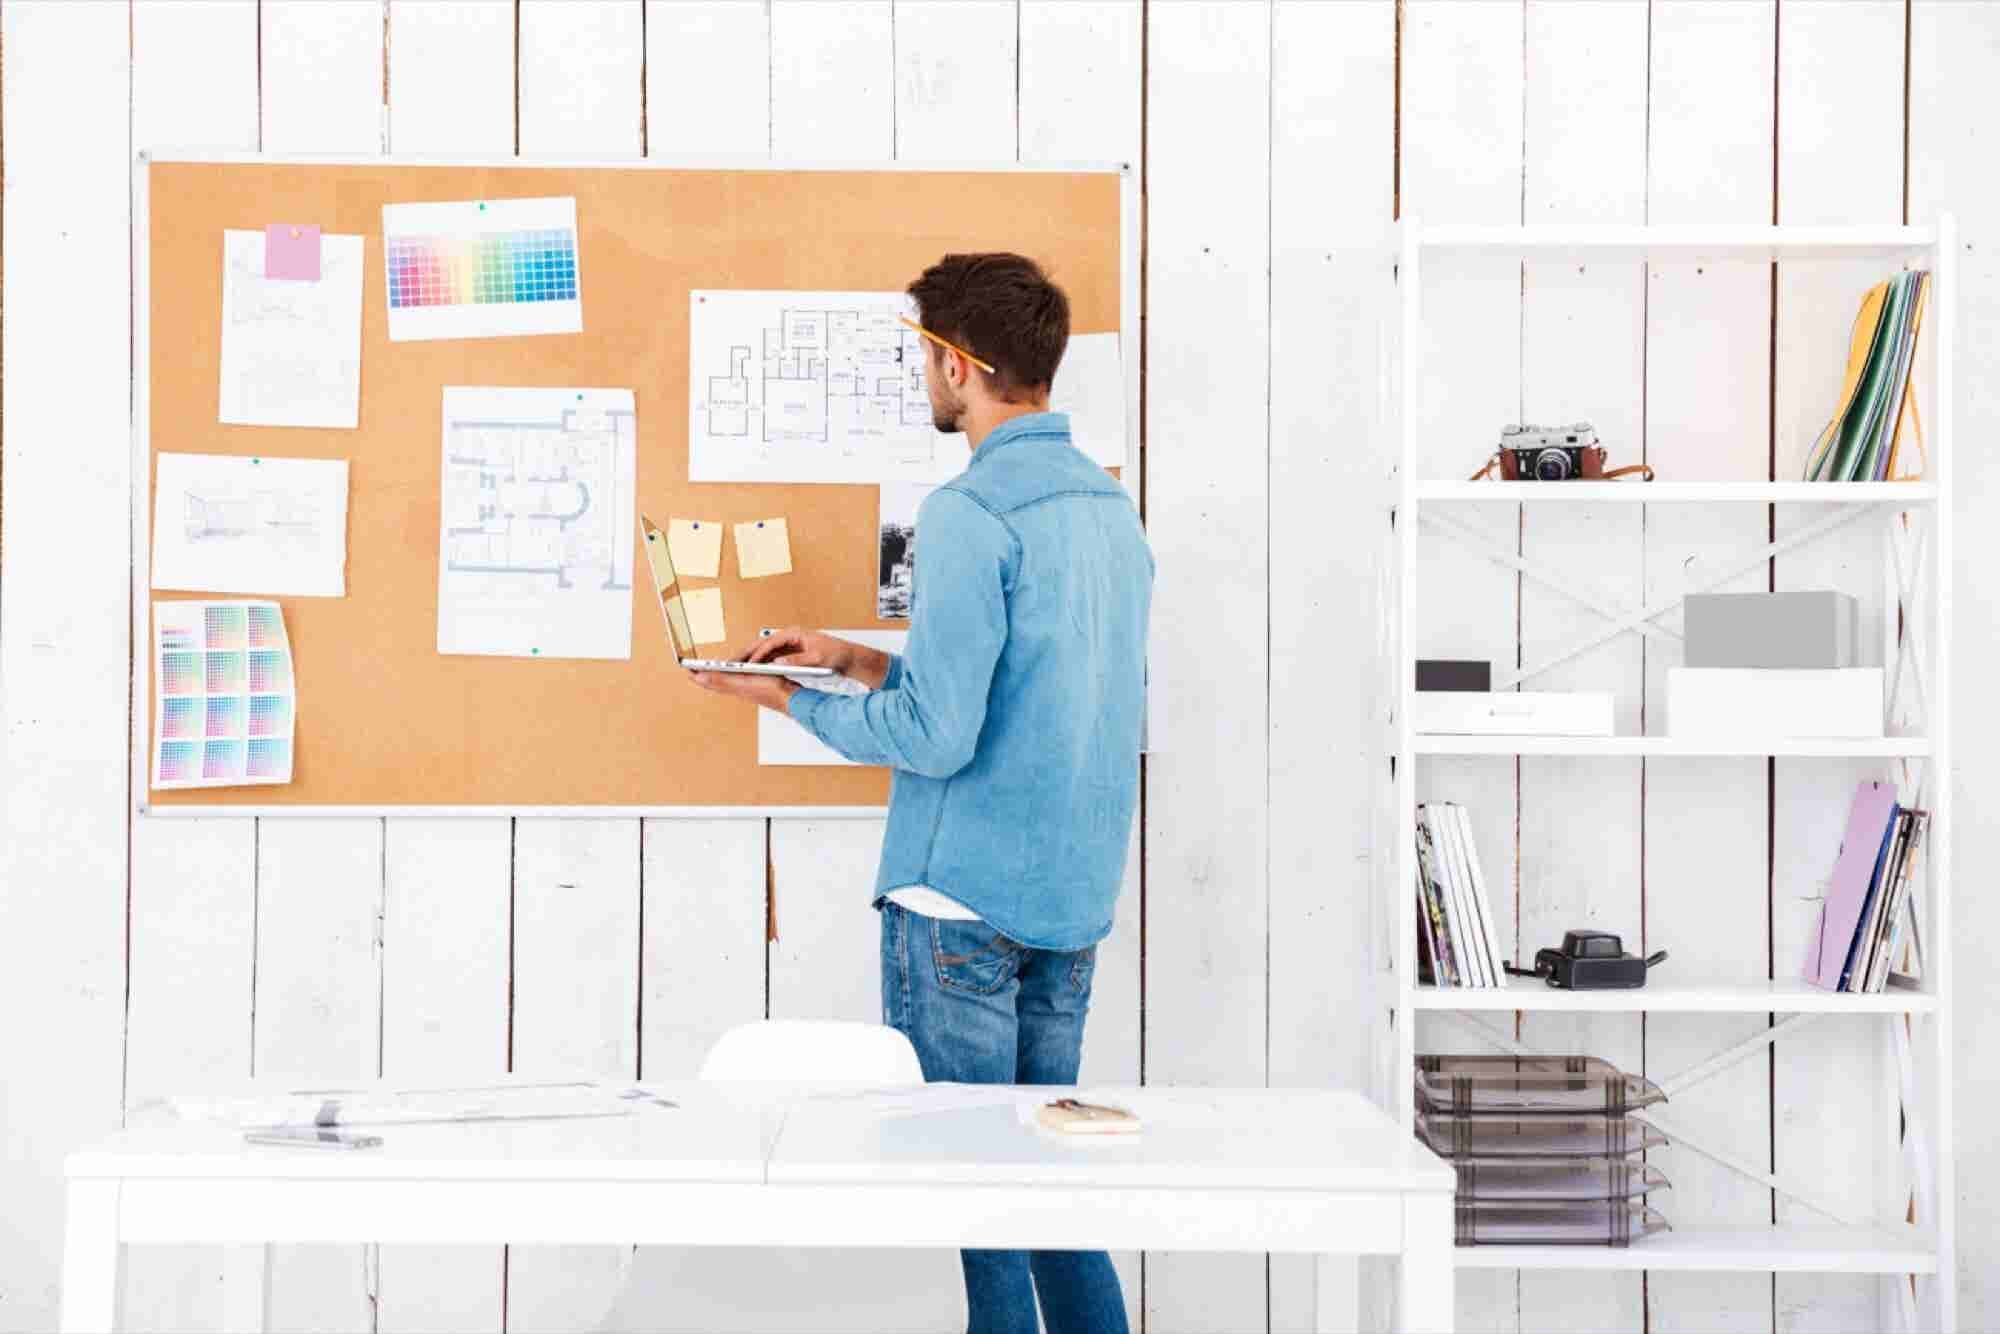 4 Common Office Design Mistakes to Avoid